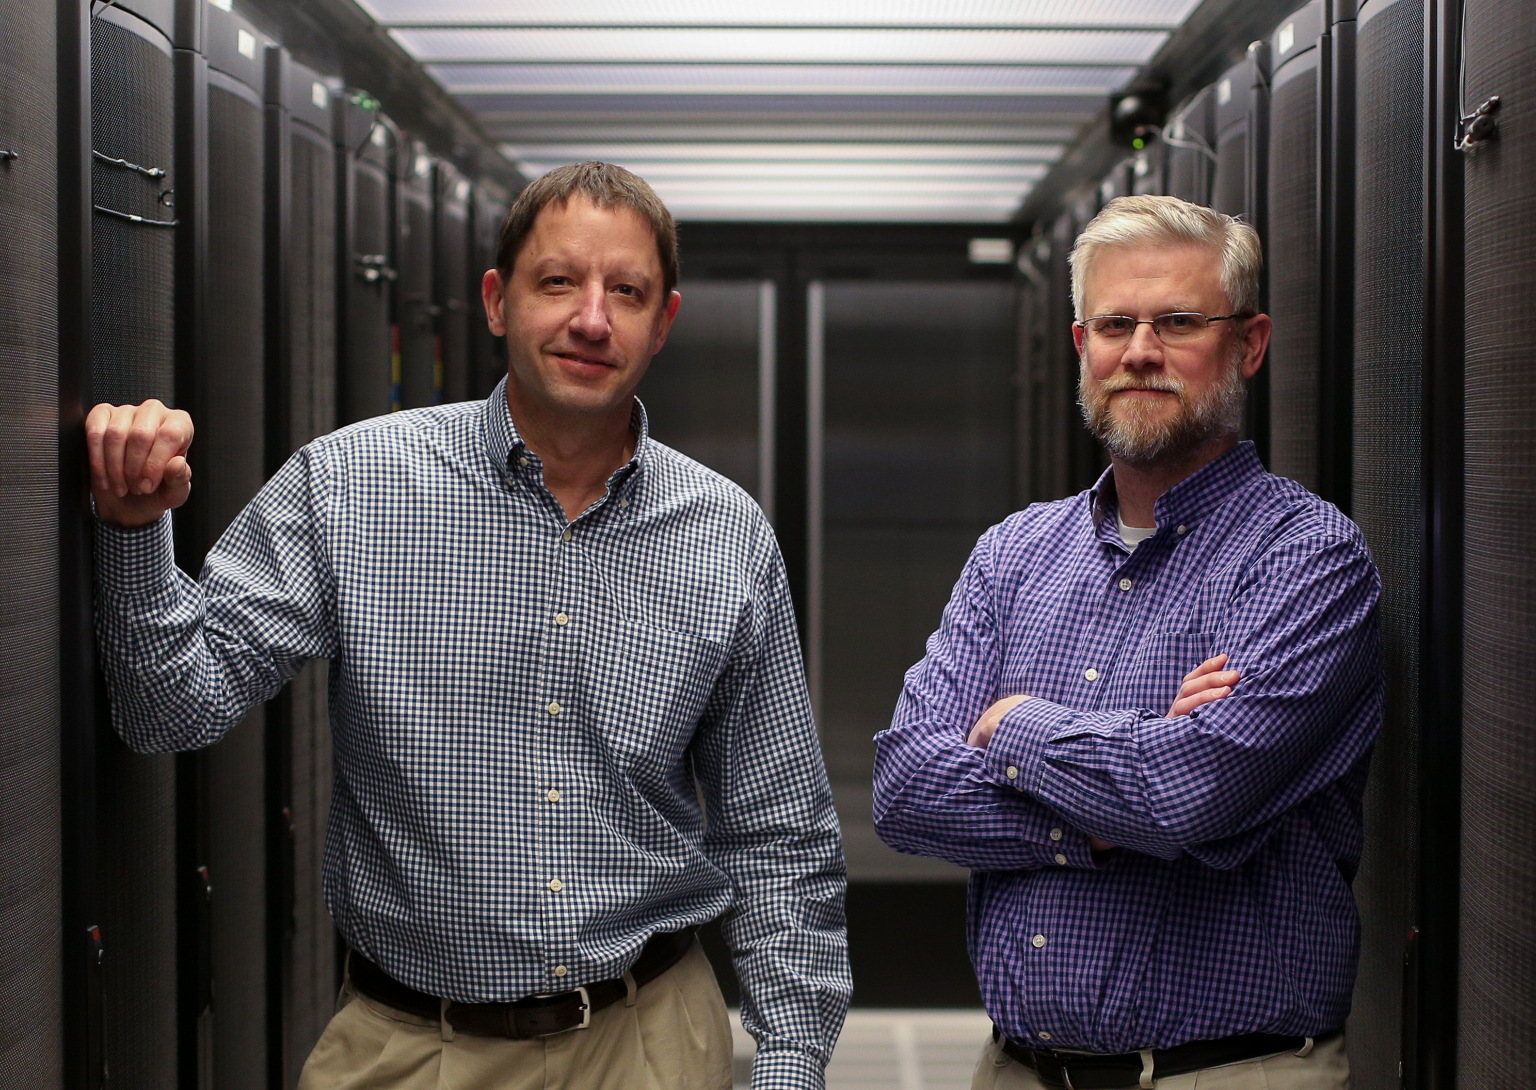 Mike Mike Pfeifer and Bill Sheesley in Union Pacific's 35,000 sq. ft. Omaha data center